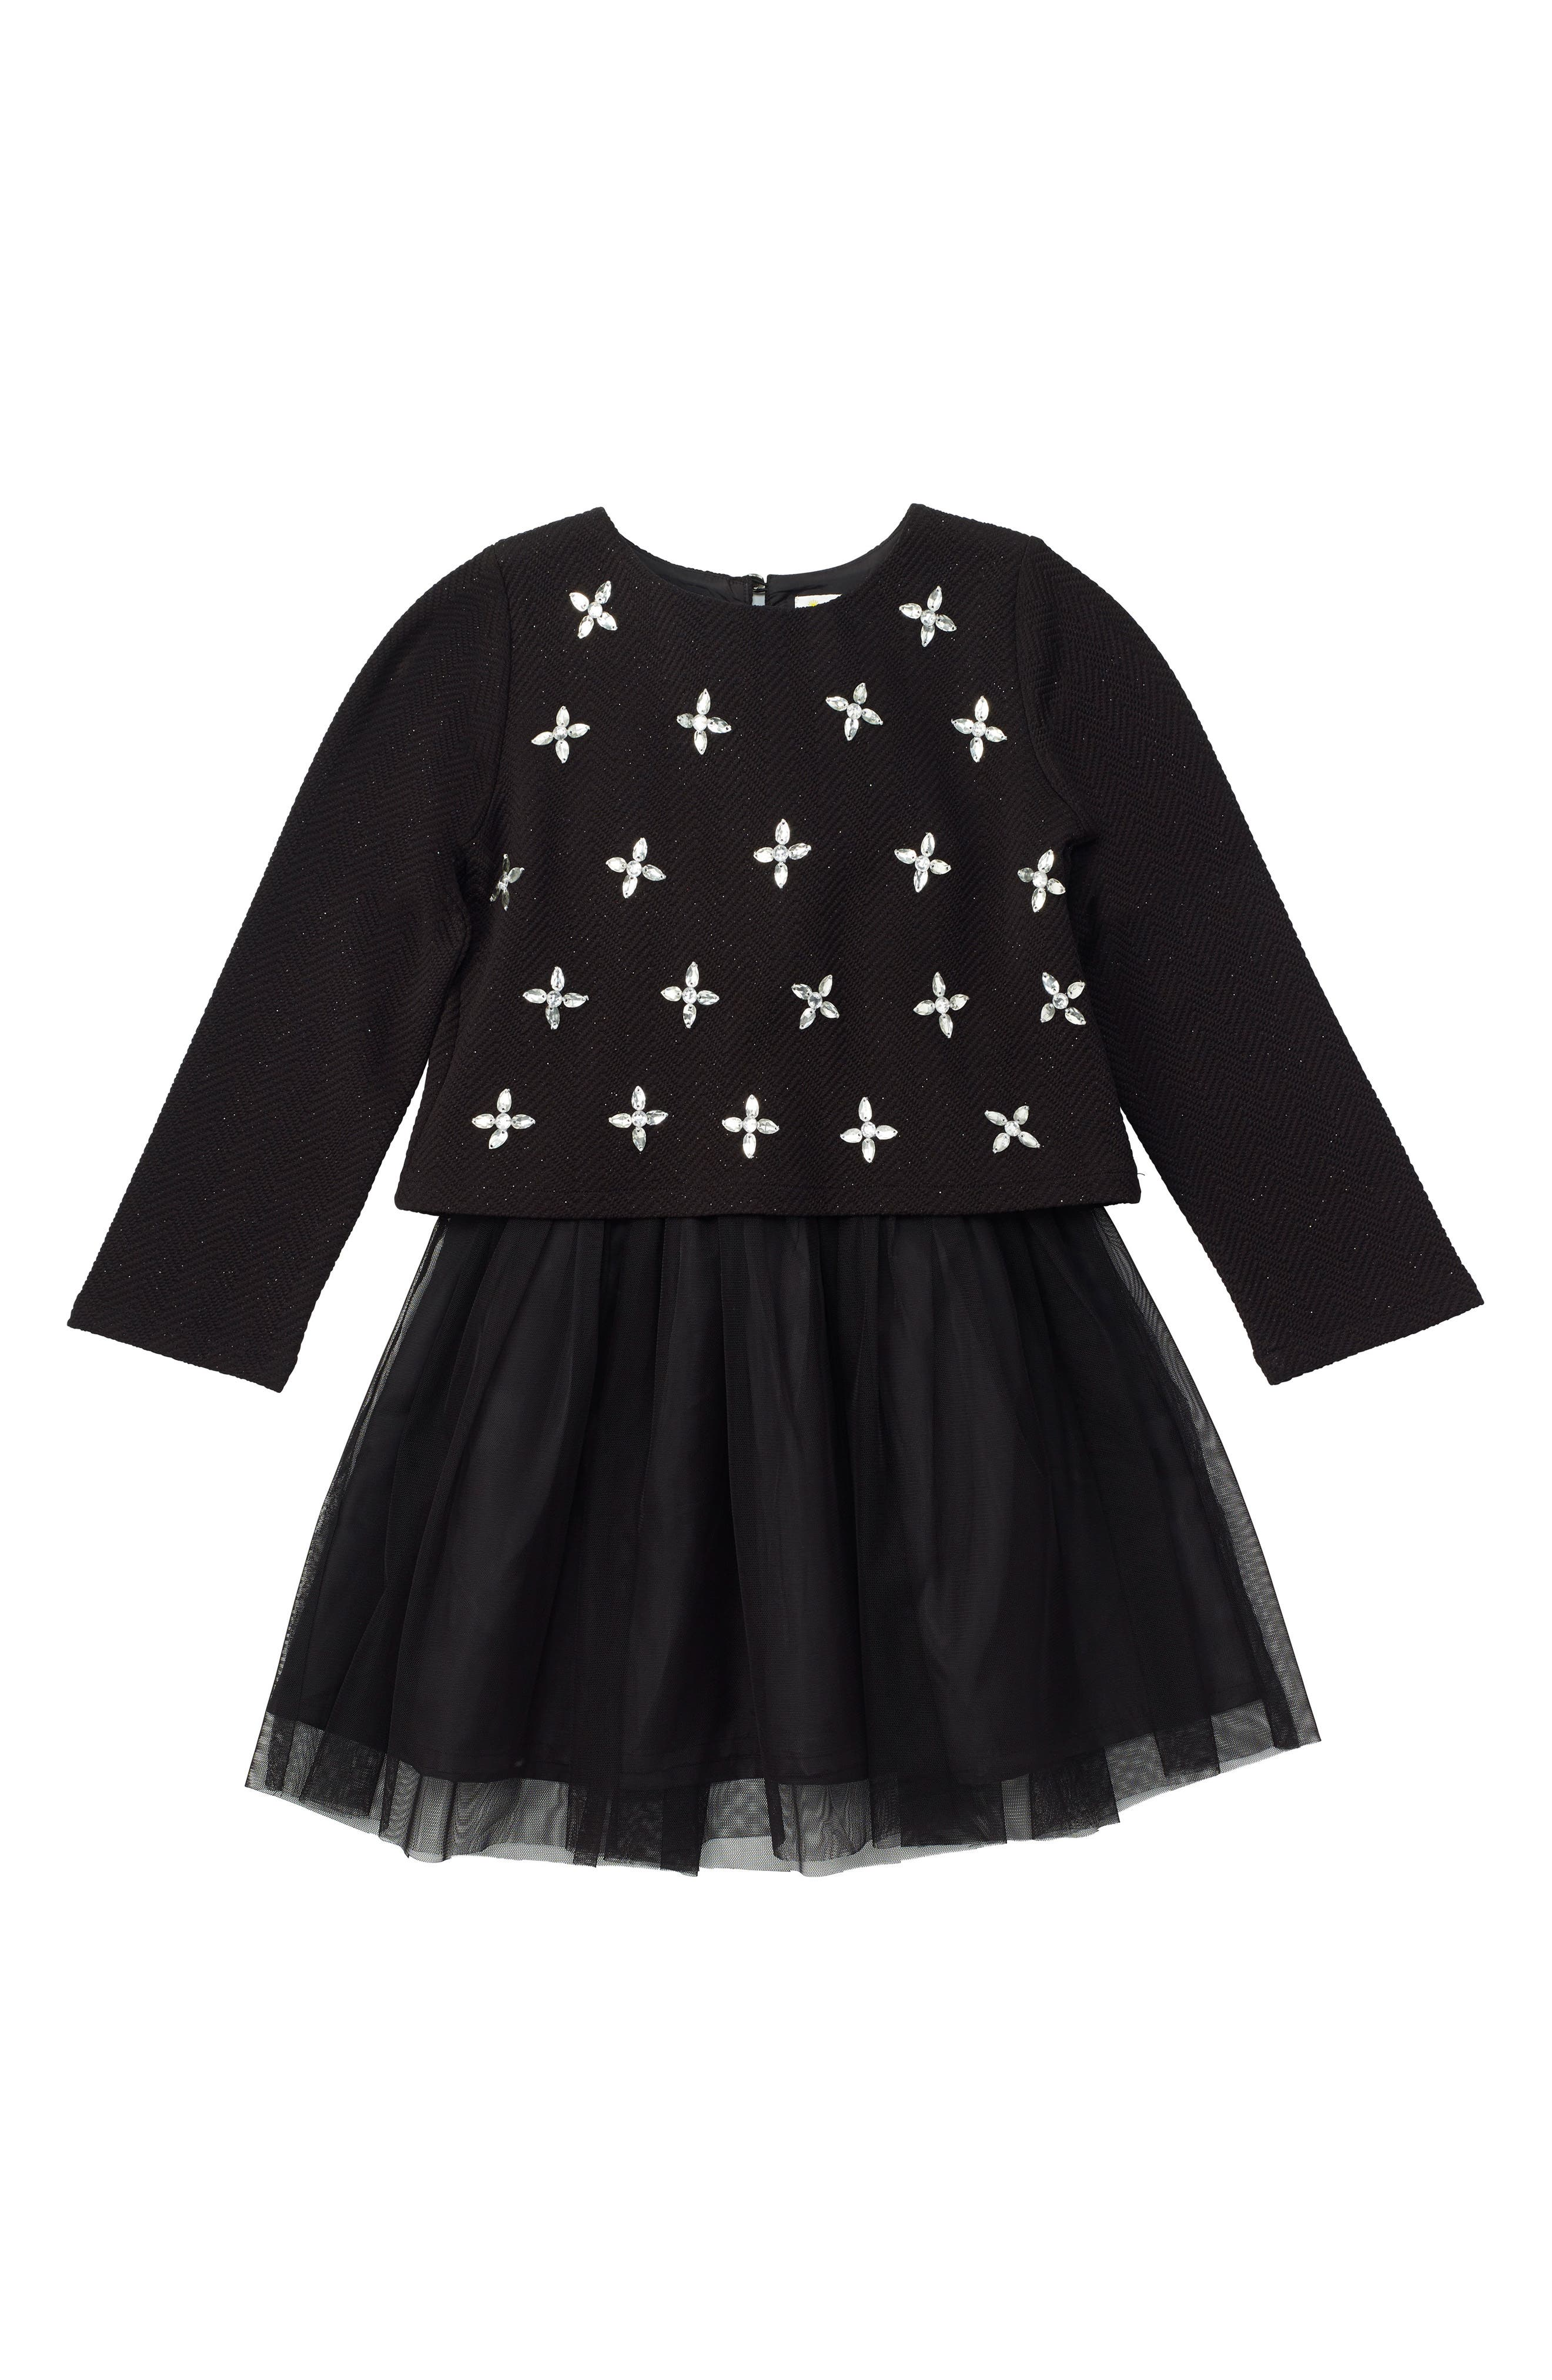 Alternate Image 1 Selected - Masalababy Faye Dress (Toddler Girls, Little Girls & Big Girls)